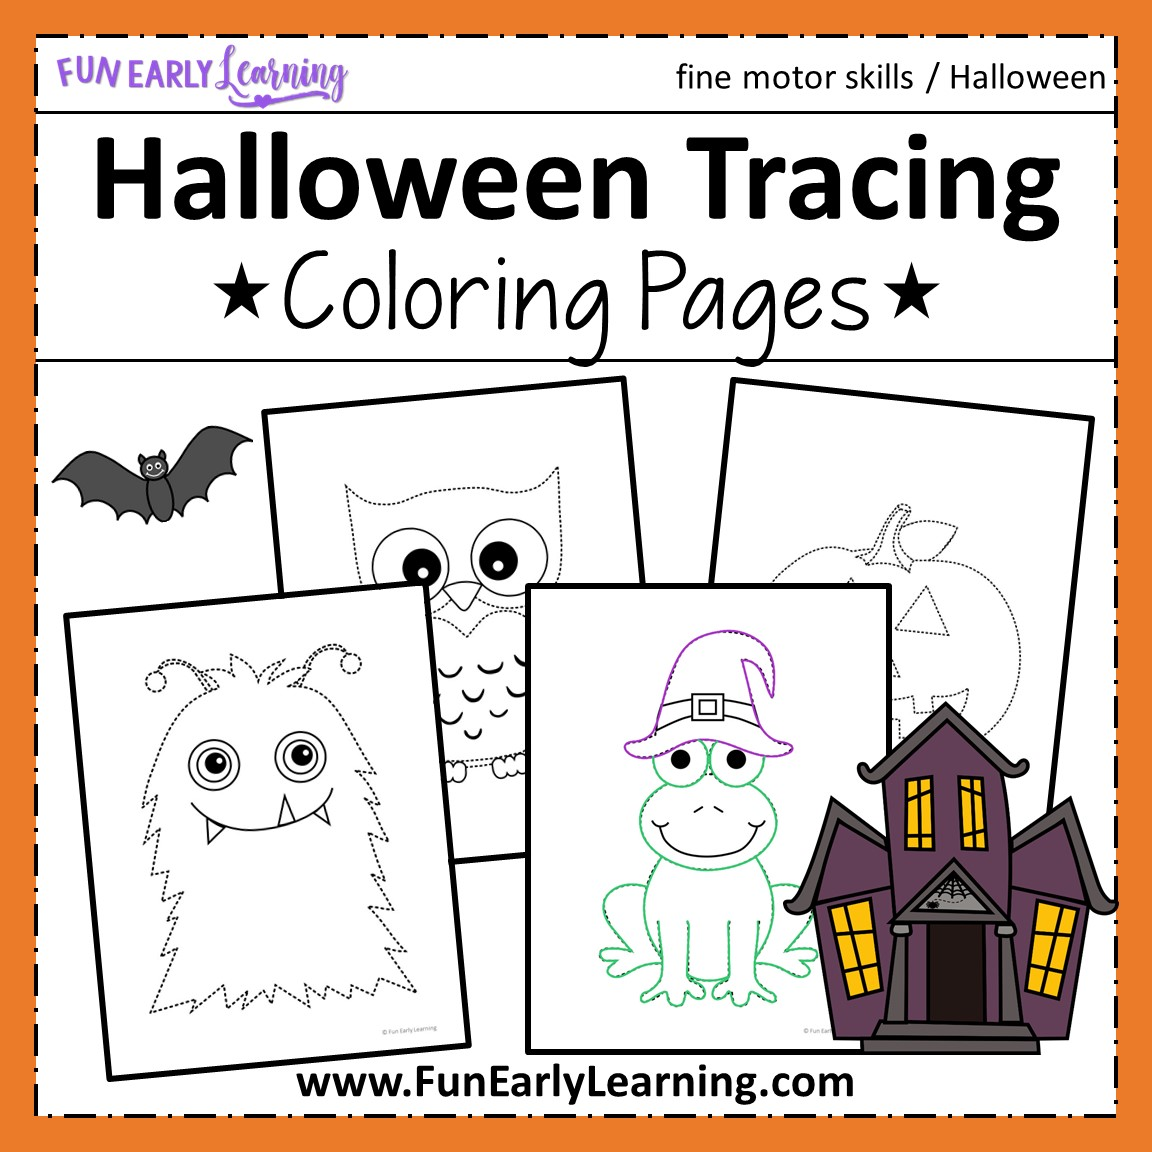 Halloween Fine Motor Skills Free Printable Activity Sheets